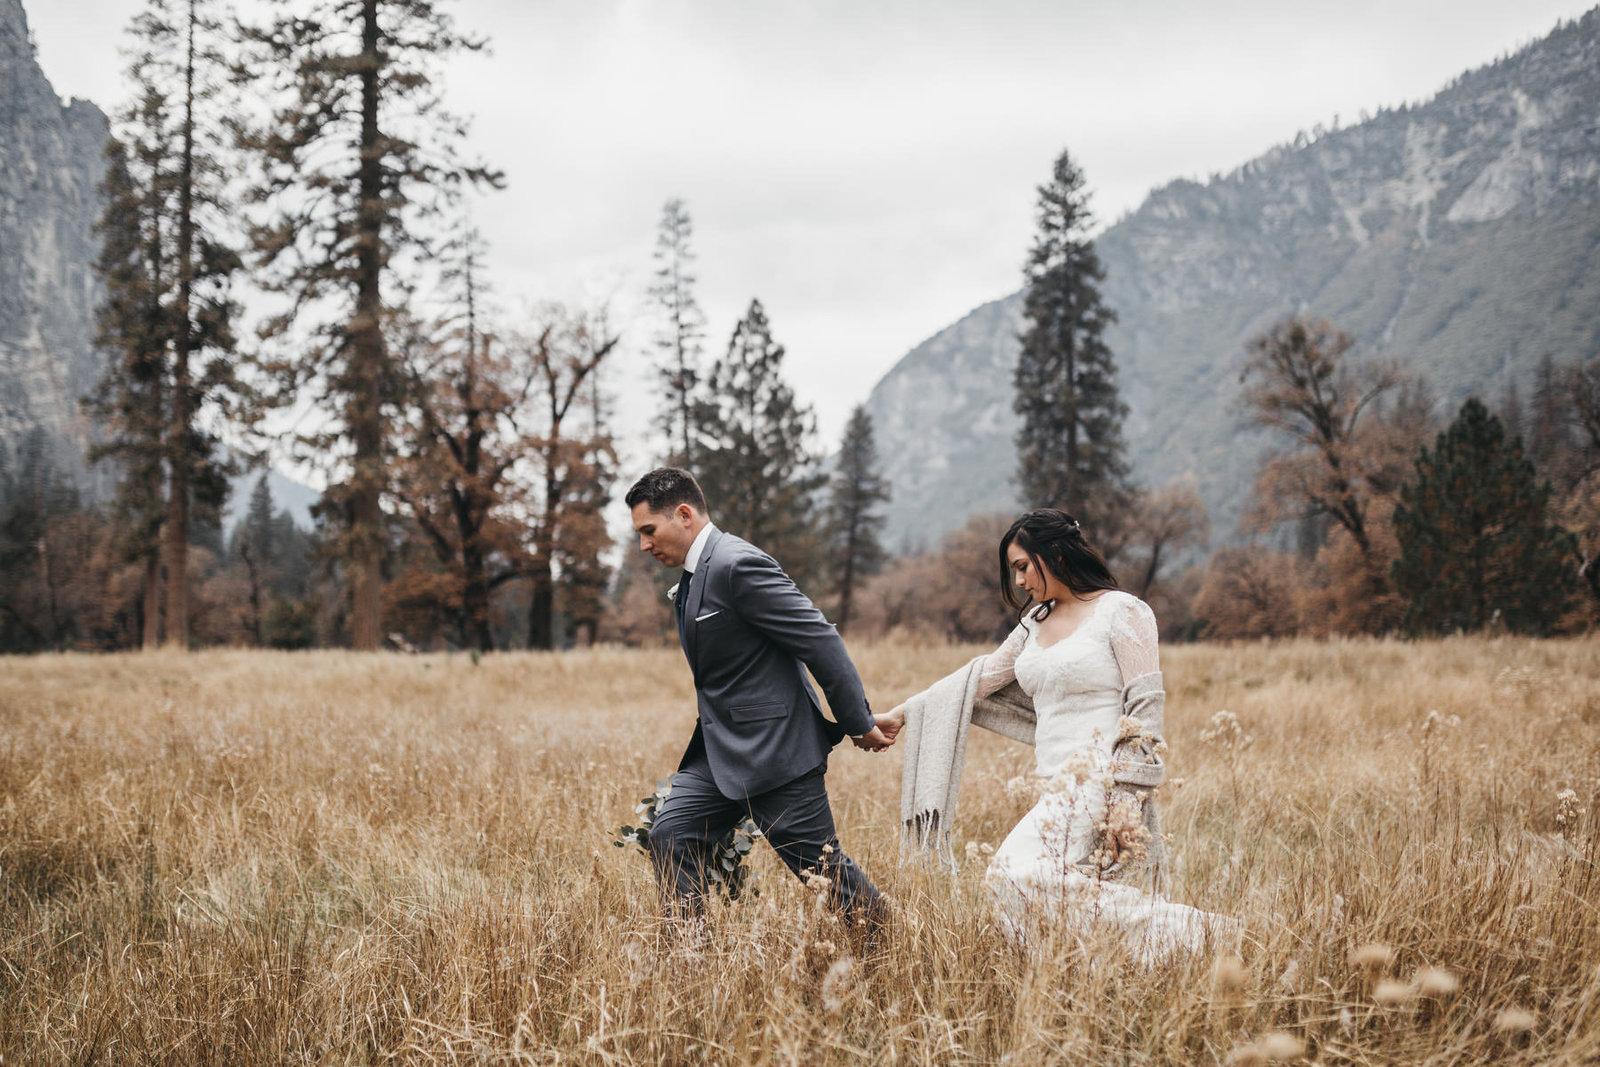 athena-and-camron-yosemite-elopement-wedding-photographer-elegent-valley-wedding25-couple-goals-walking-candid